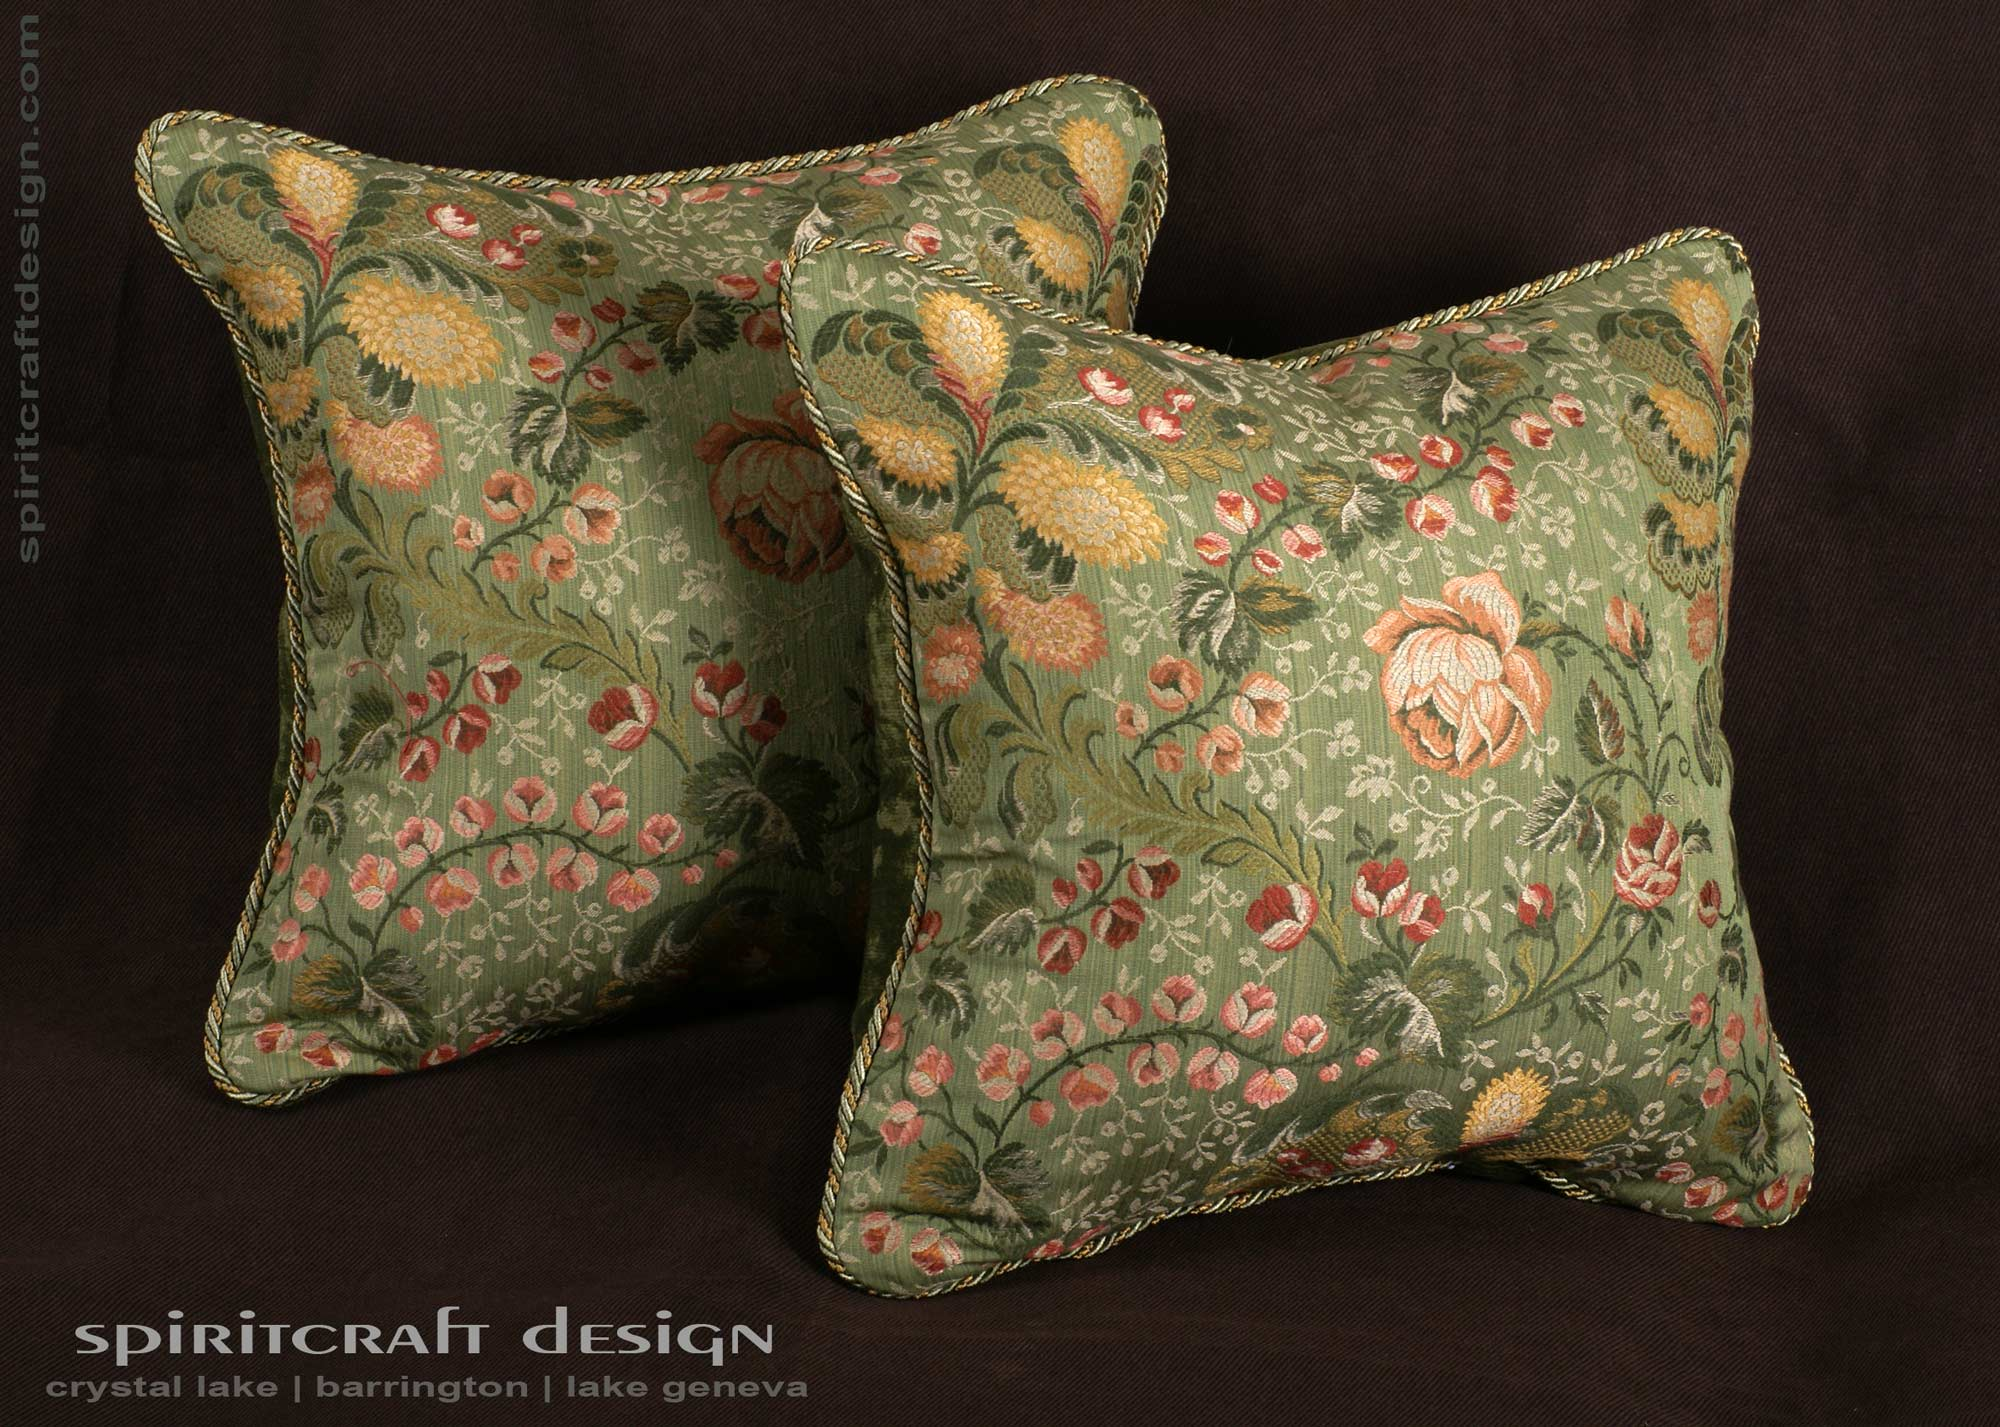 Decorative Pillows, Custom Bedding In Barrington, Crystal